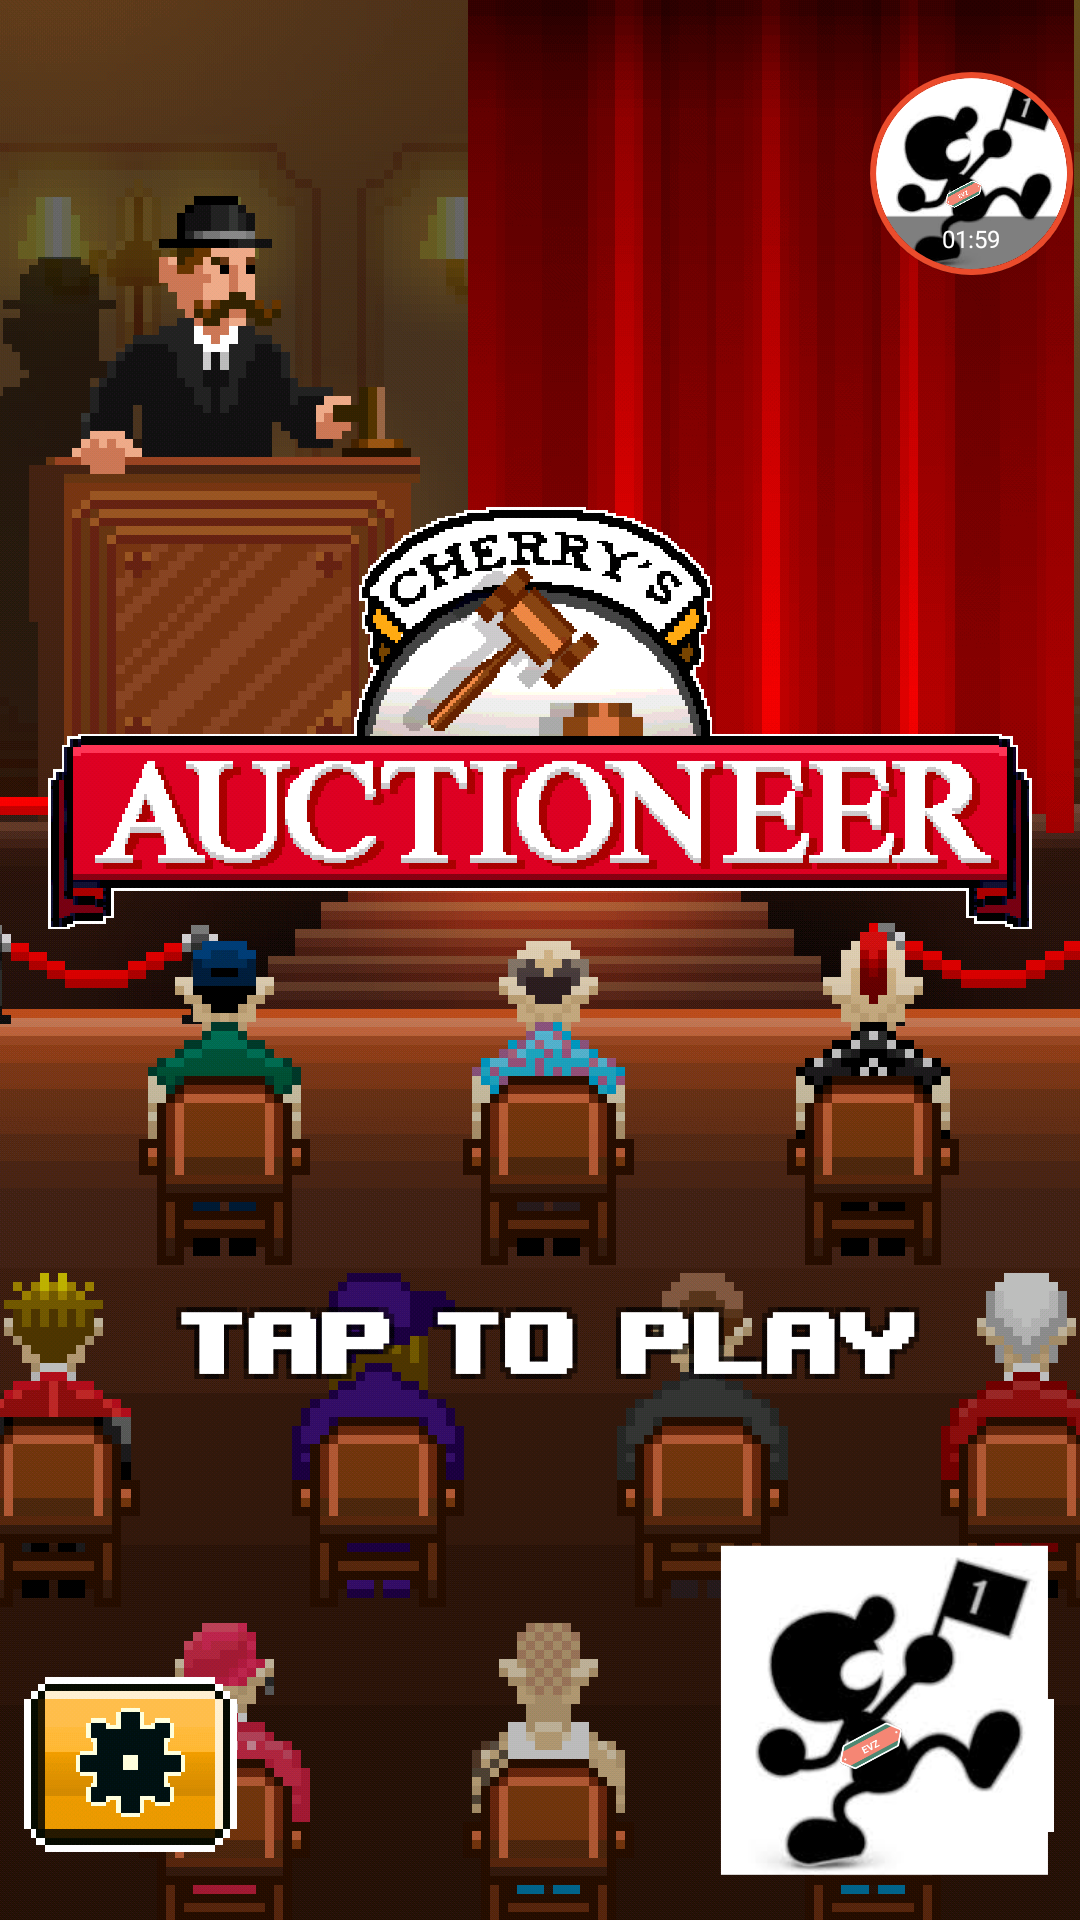 ministorm04: Auctioneer (Android) 67 points on 2019-07-10 07:36:50